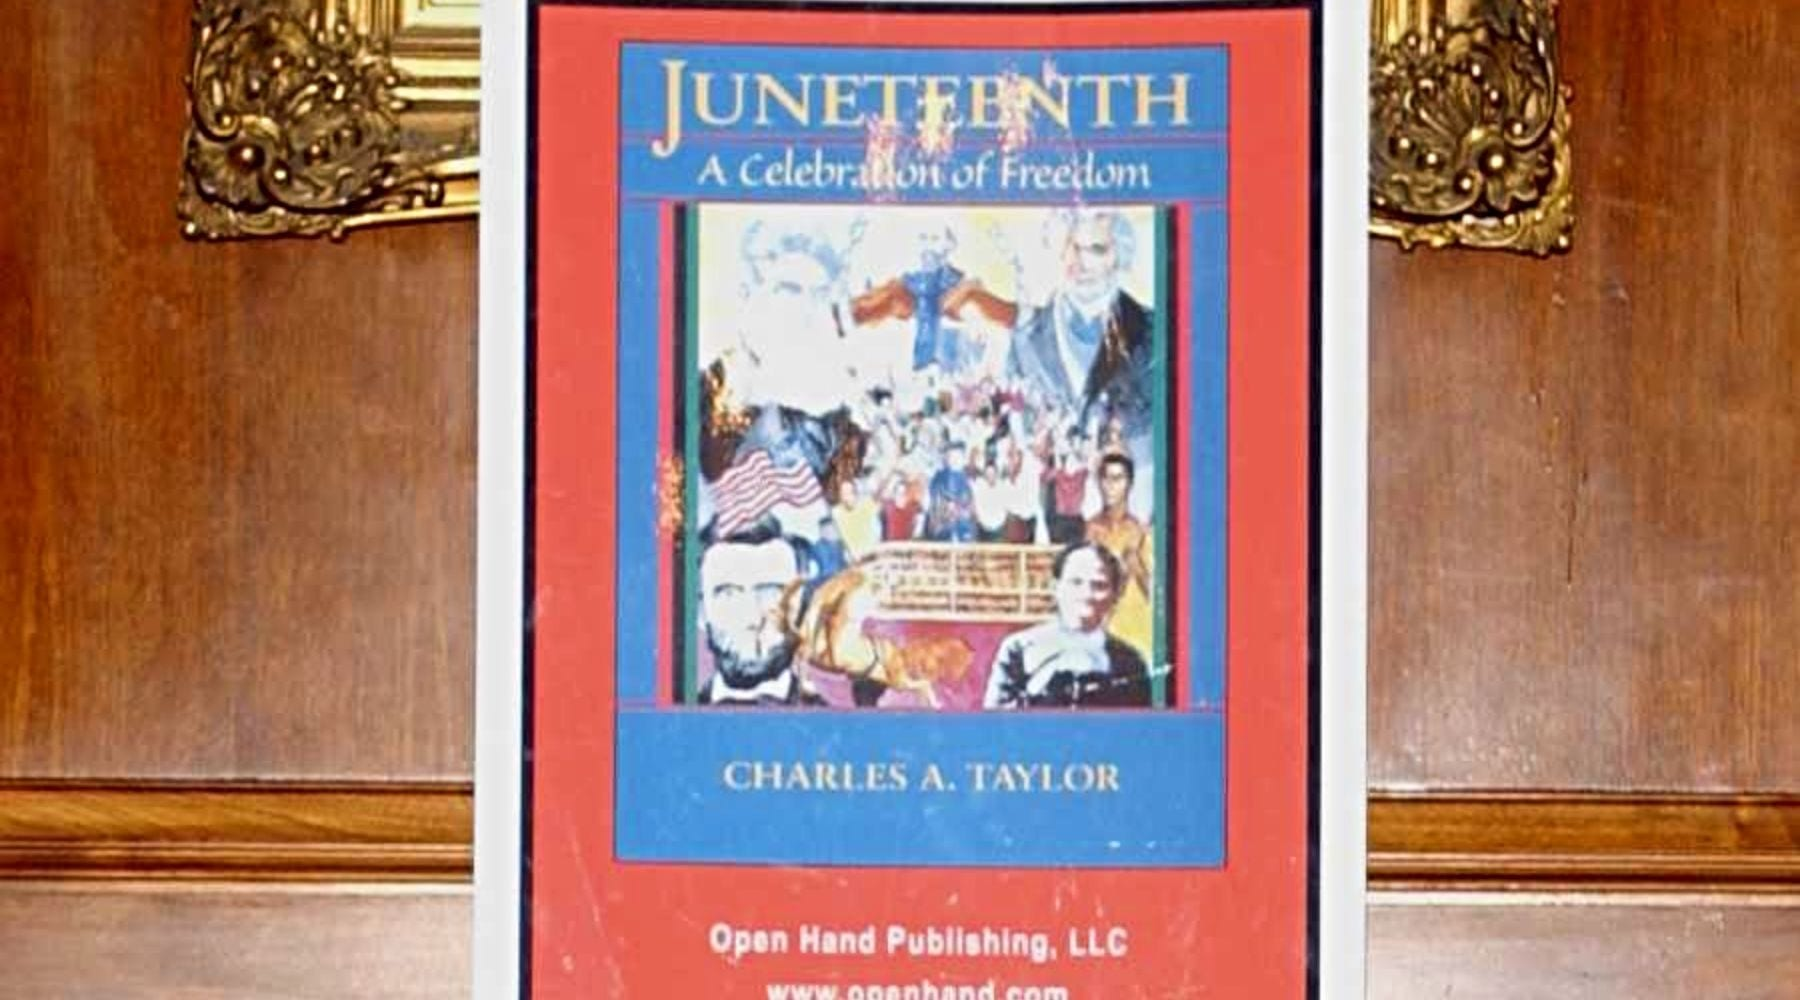 Juneteenth Celebrates Freedom from Slavery, Respects Cultures